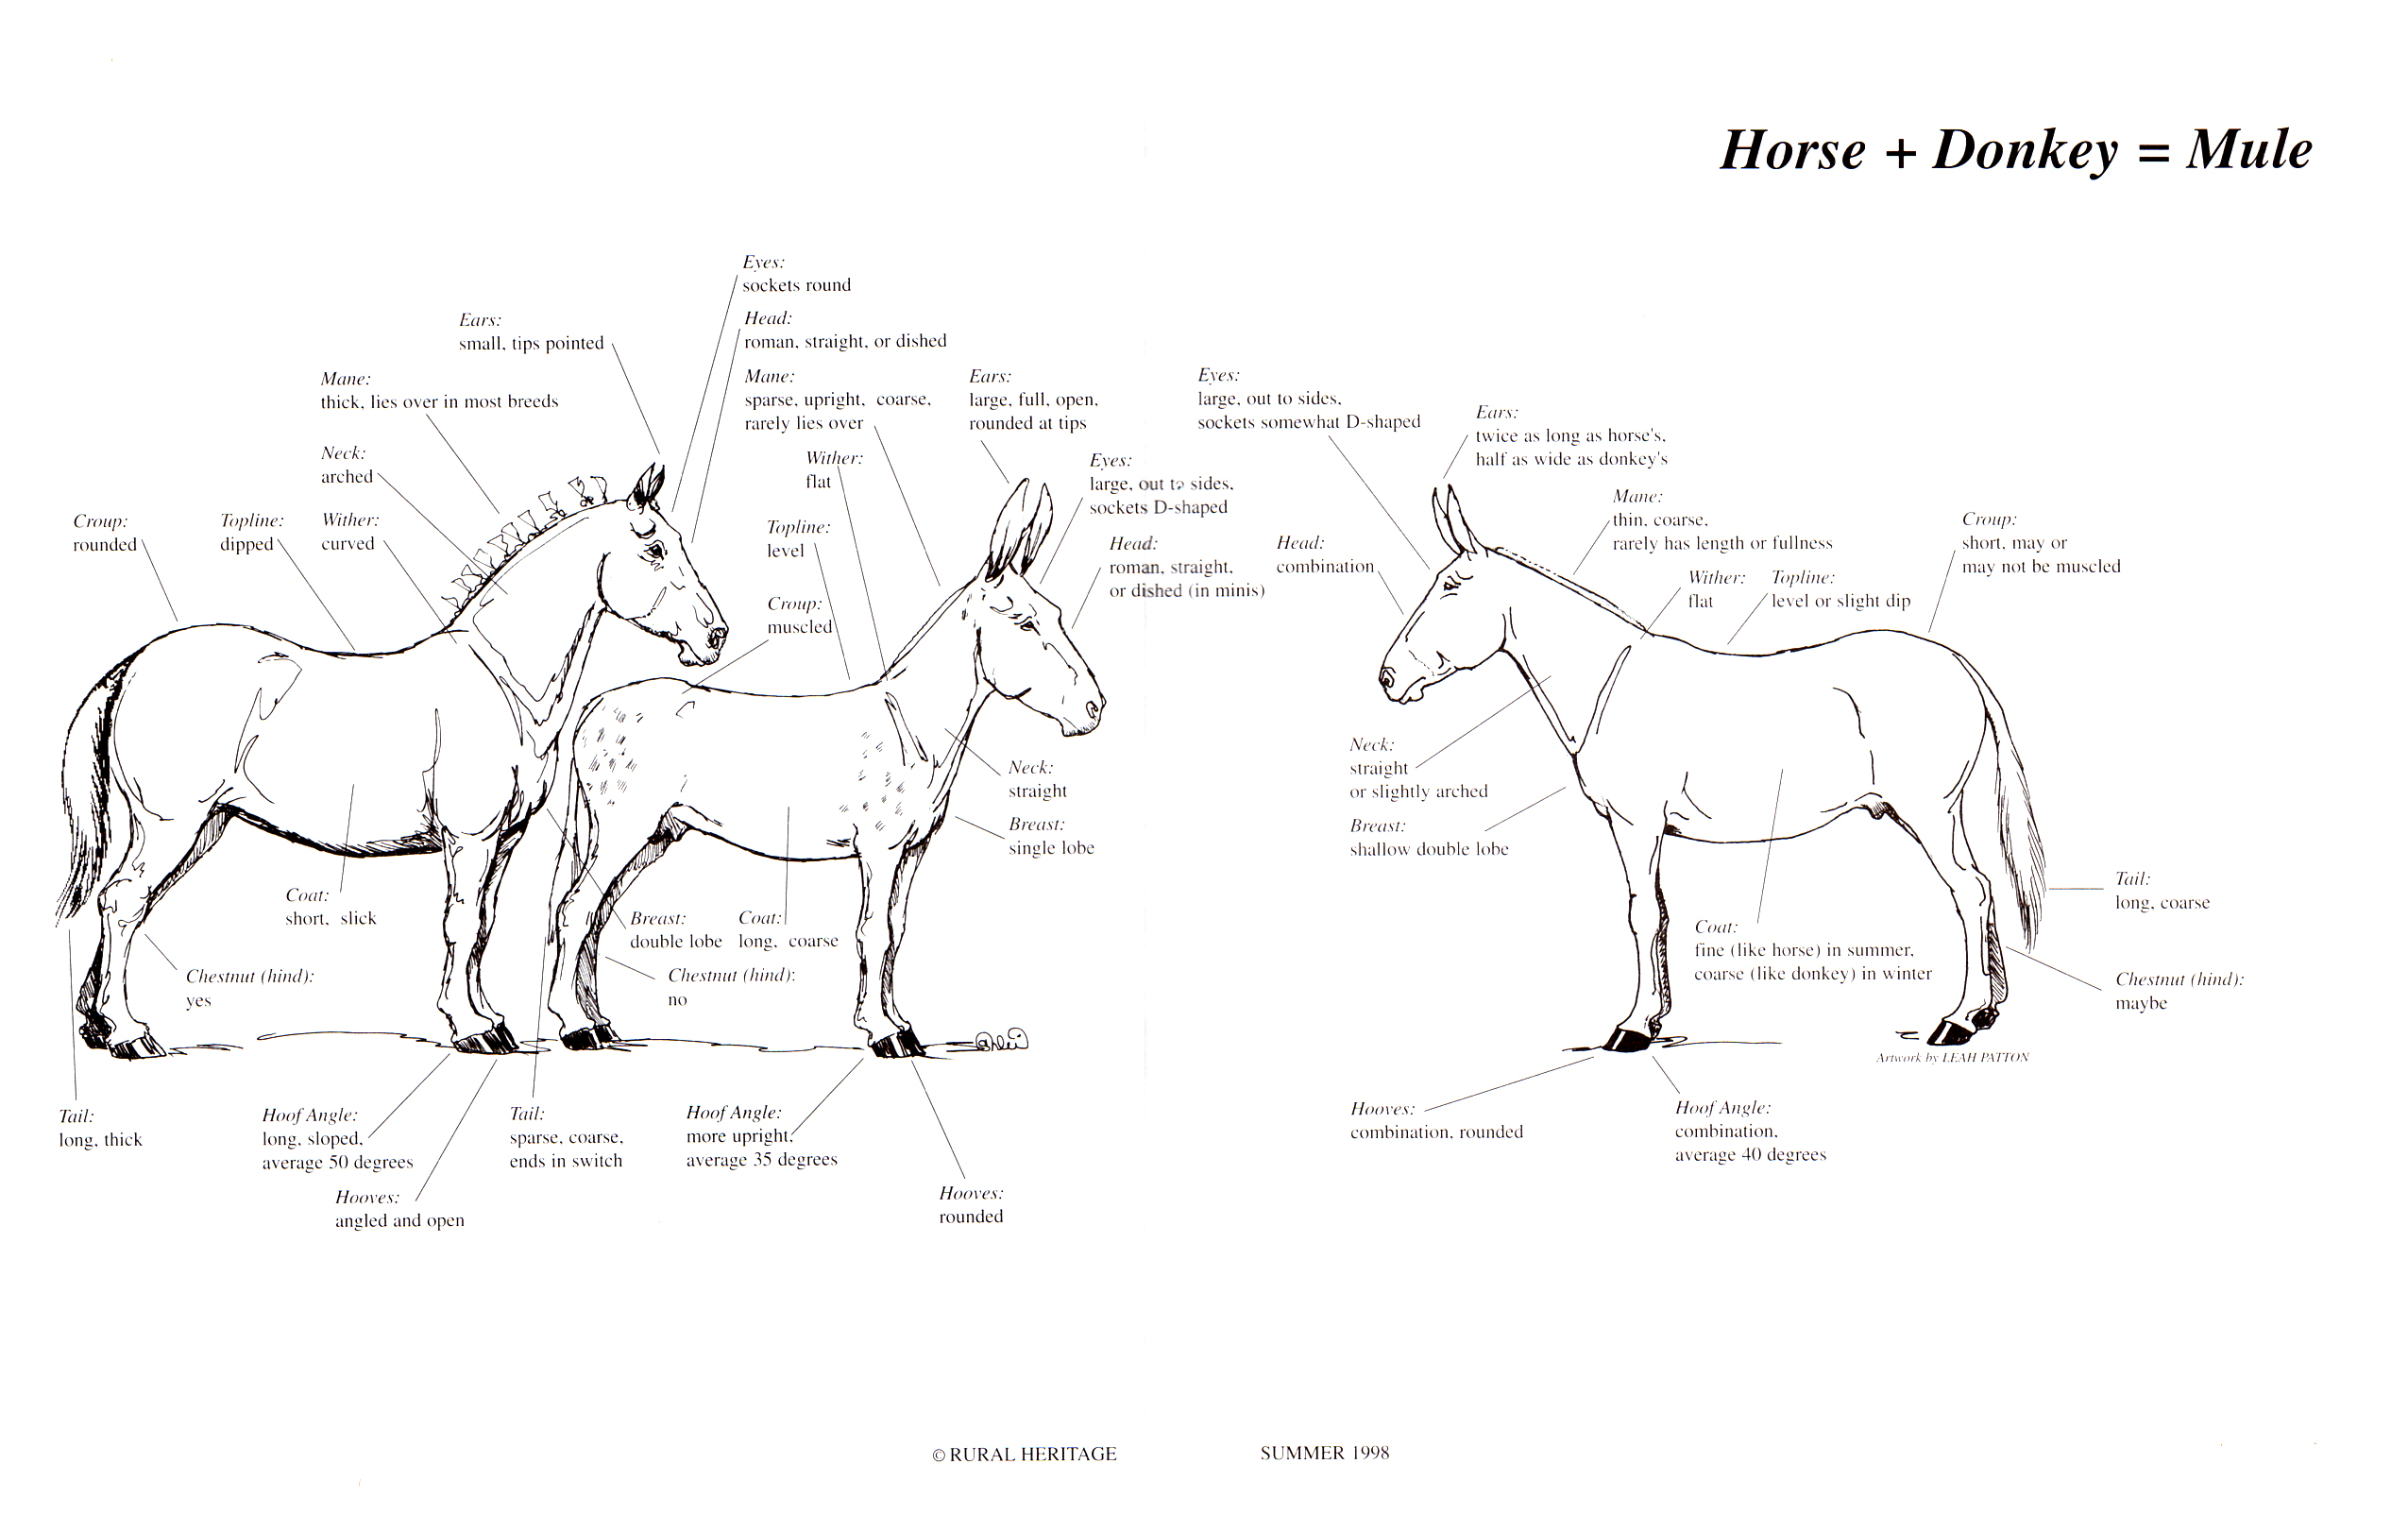 donkey+horse=mule illustrations